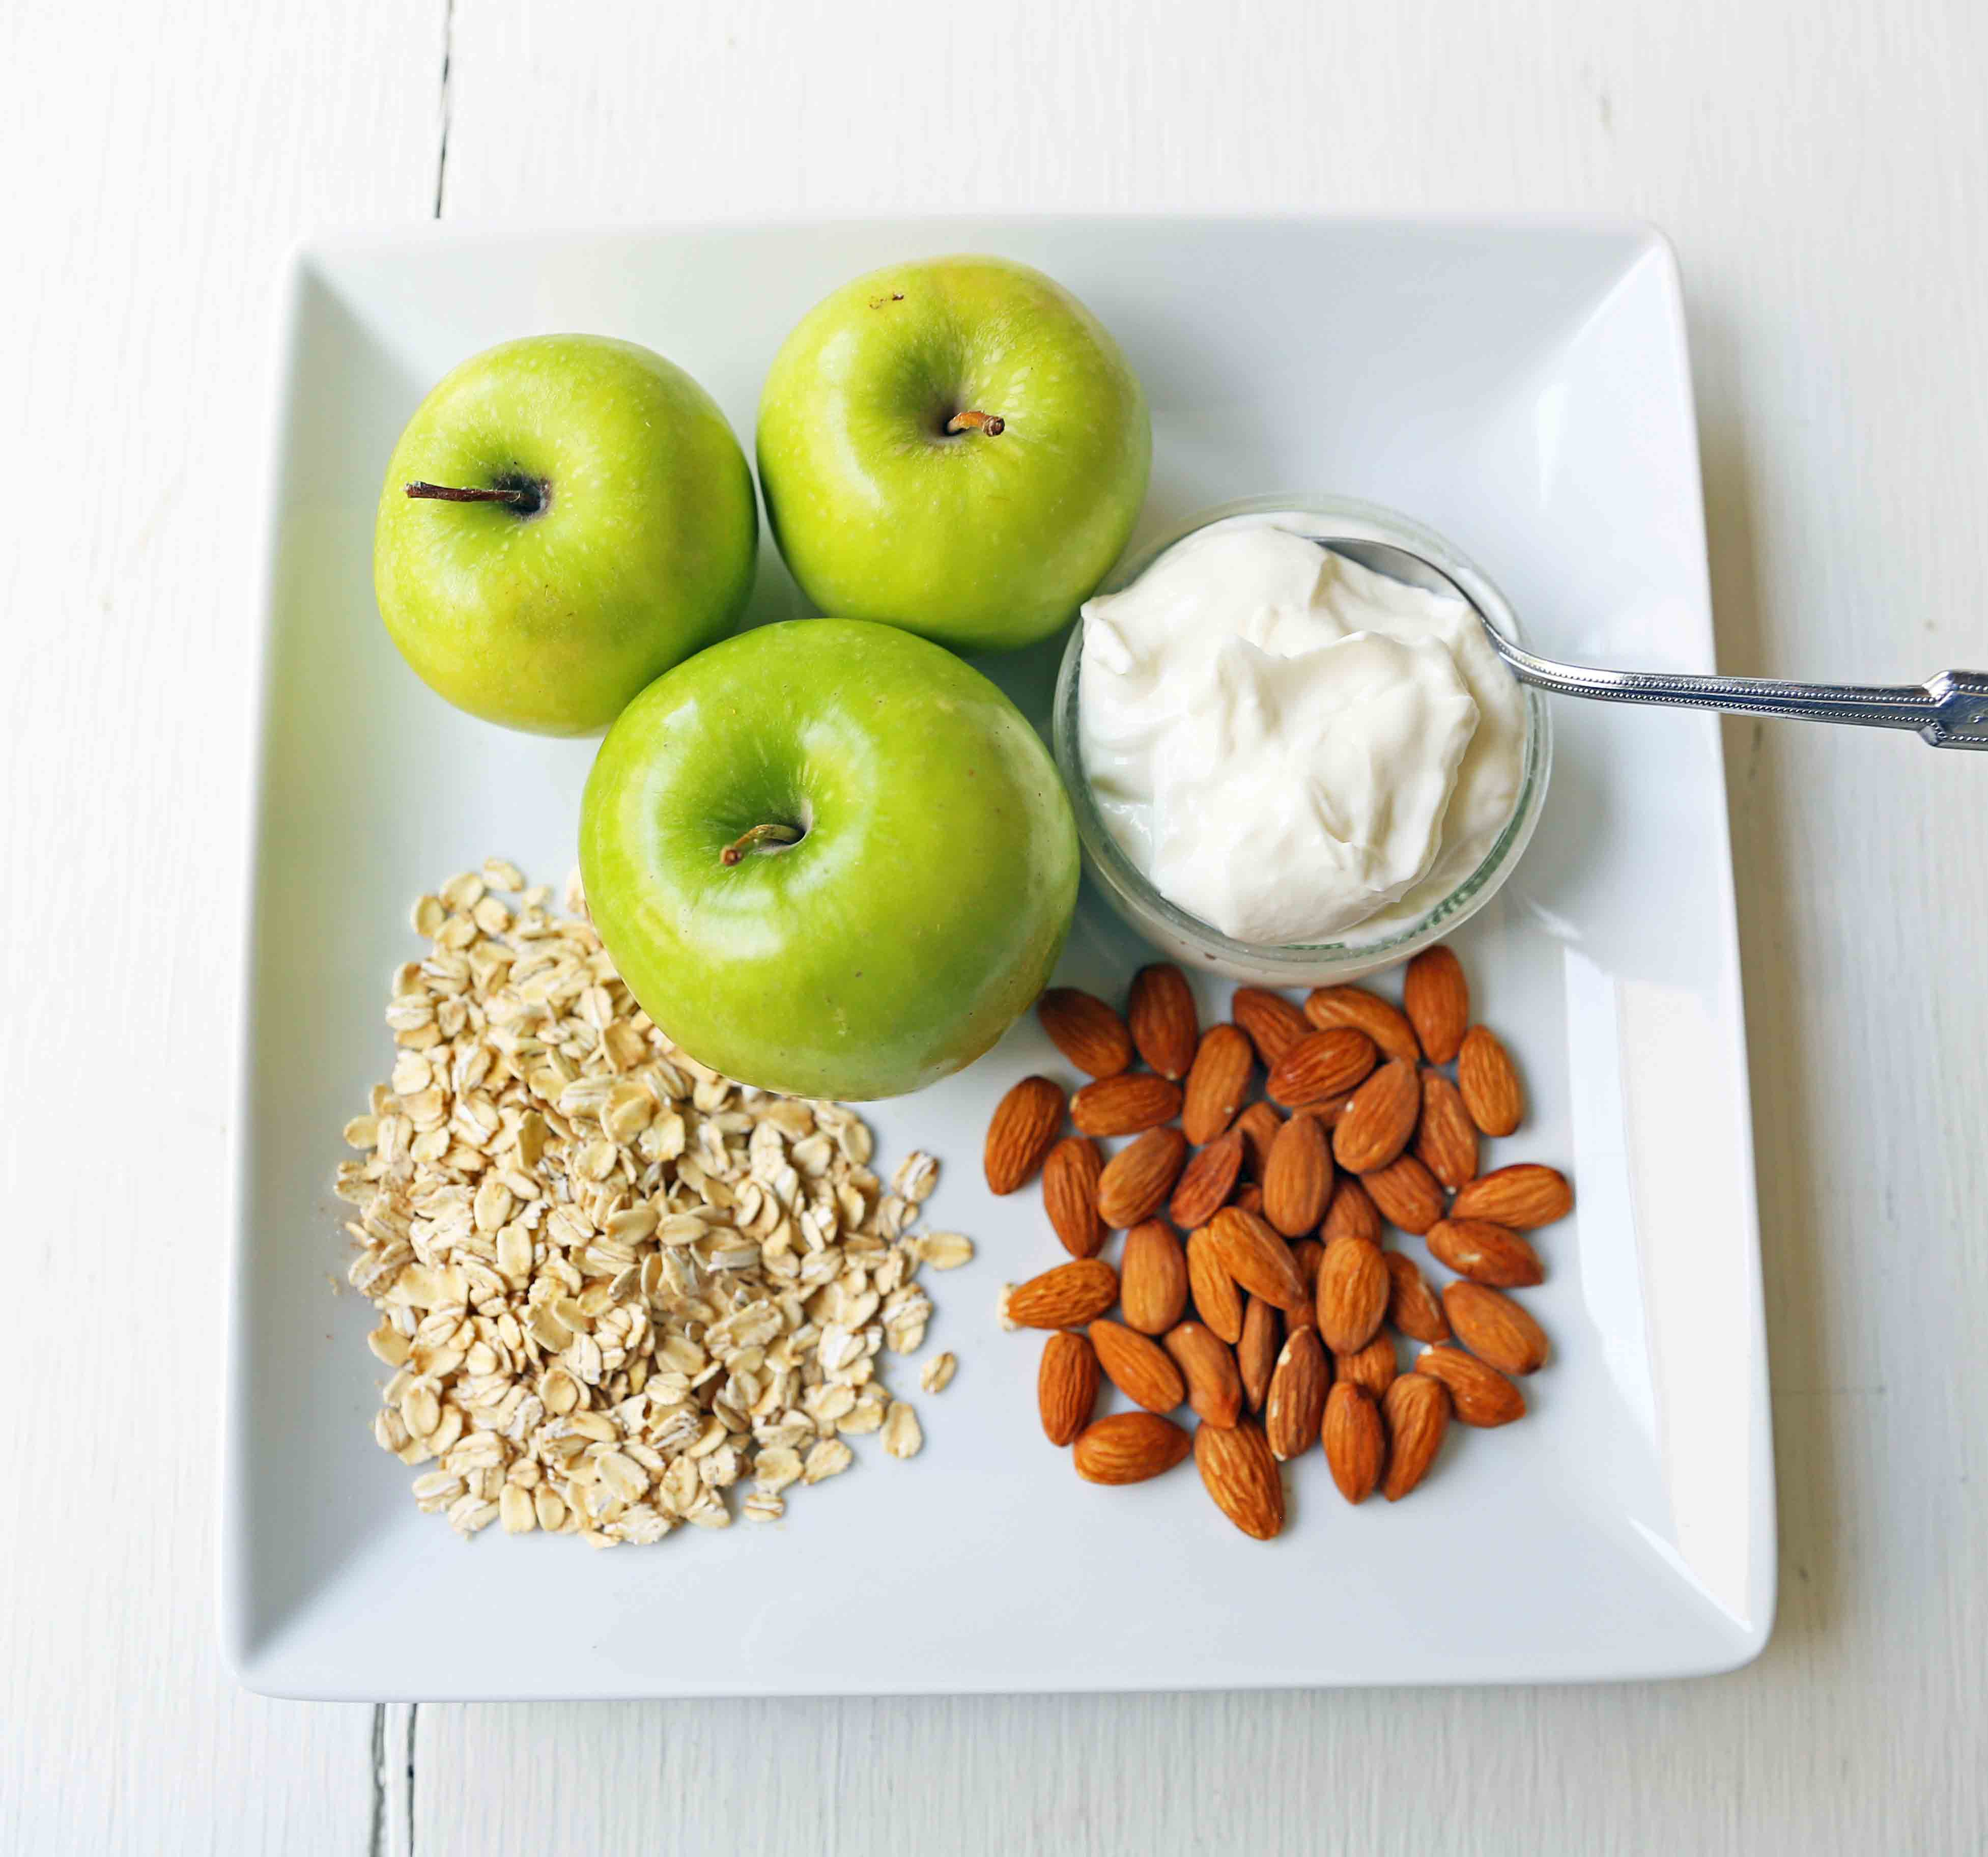 Greek Yogurt Green Apples Almonds and Rolled Oats. Apple Pie Overnight Oats. Healthy no-sugar-added breakfast. Overnight Oats with Greek Yogurt, Crisp Green Apples, Crunchy Almonds, Cinnamon, and Real Maple Syrup. www.modernhoney.com #overnightoats #applepieovernightoats #appleovernightoats